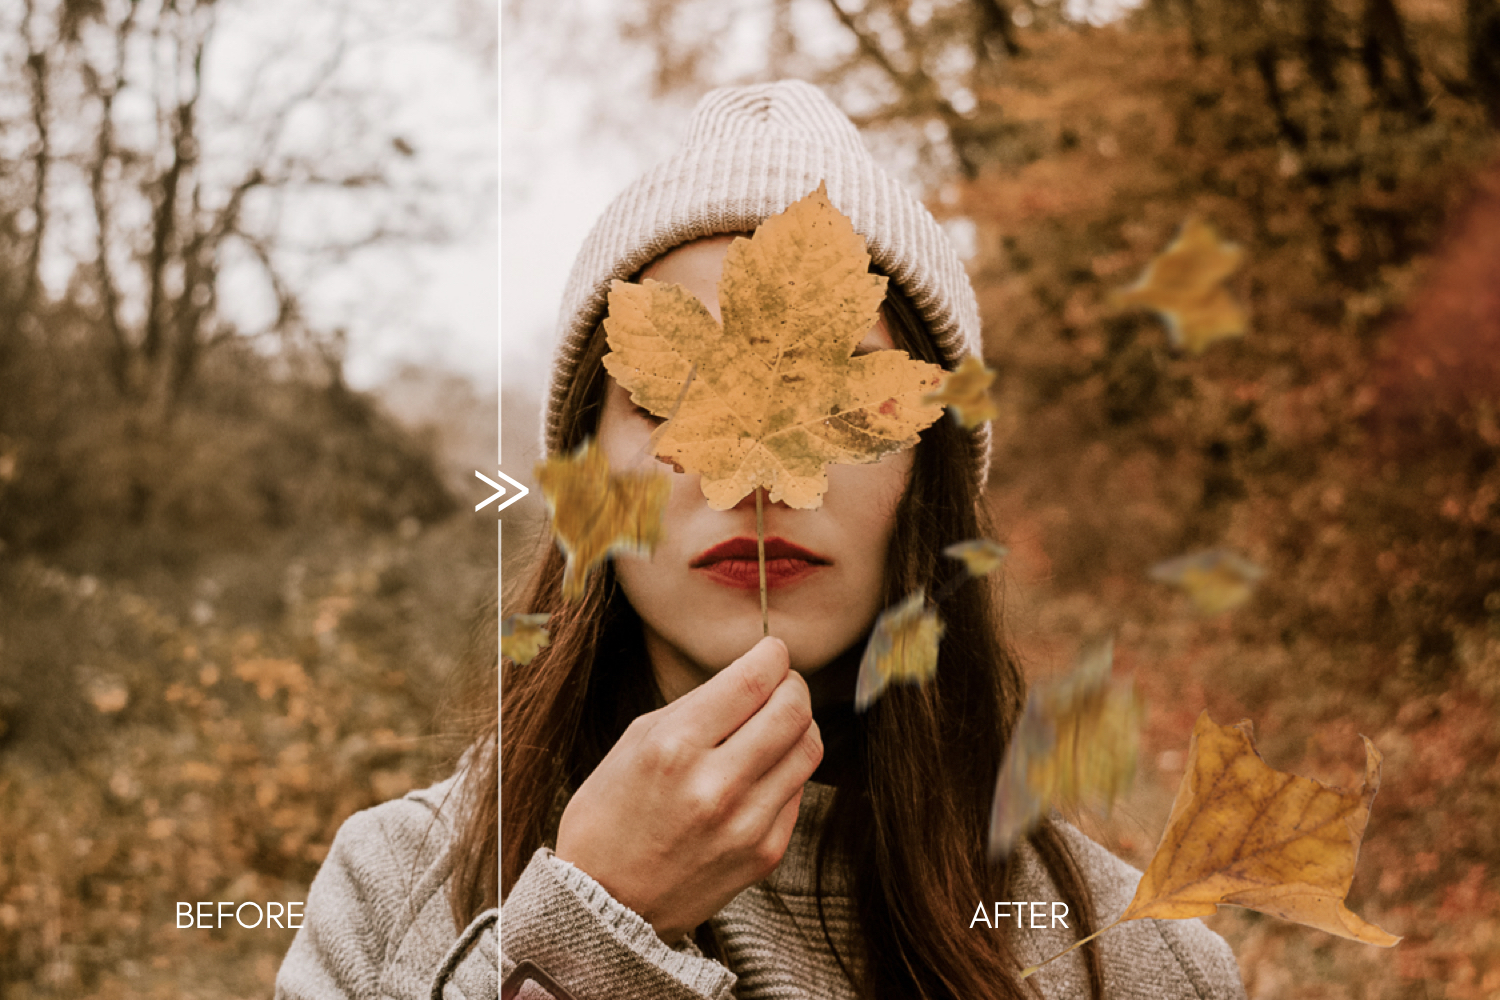 Falling leaves photoshop overlay Autumn clip art Digital photography prop Tree branches cut out Transparent background Photo backdrop